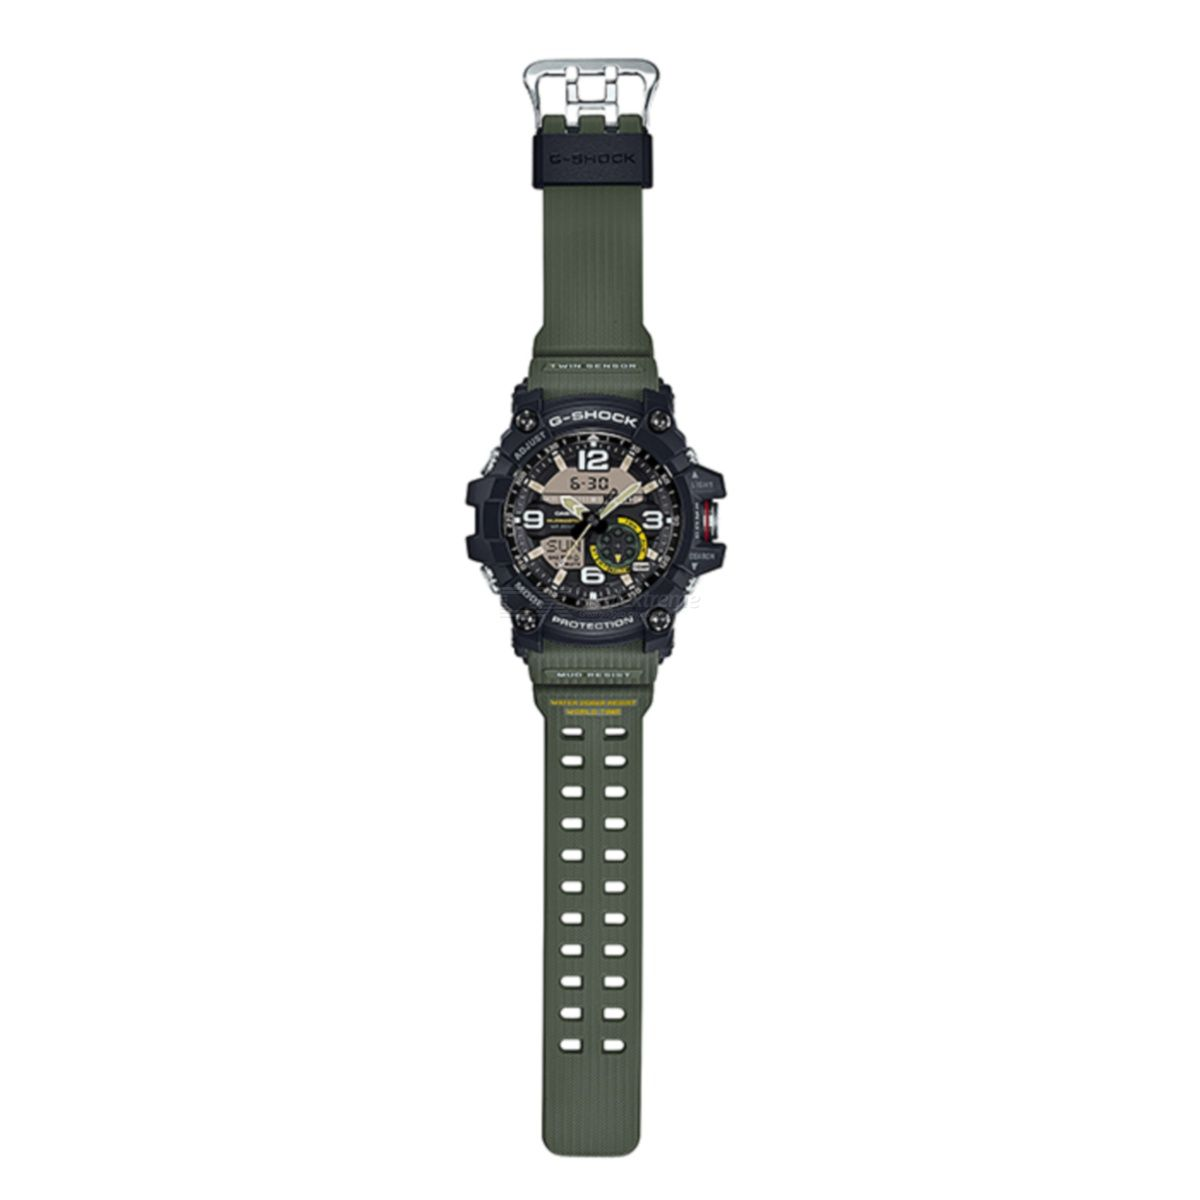 bdf1690ea Casio G-Shock GG-1000-1A3 Mudmaster Mens Watch - Green And Black - Free  shipping - DealExtreme